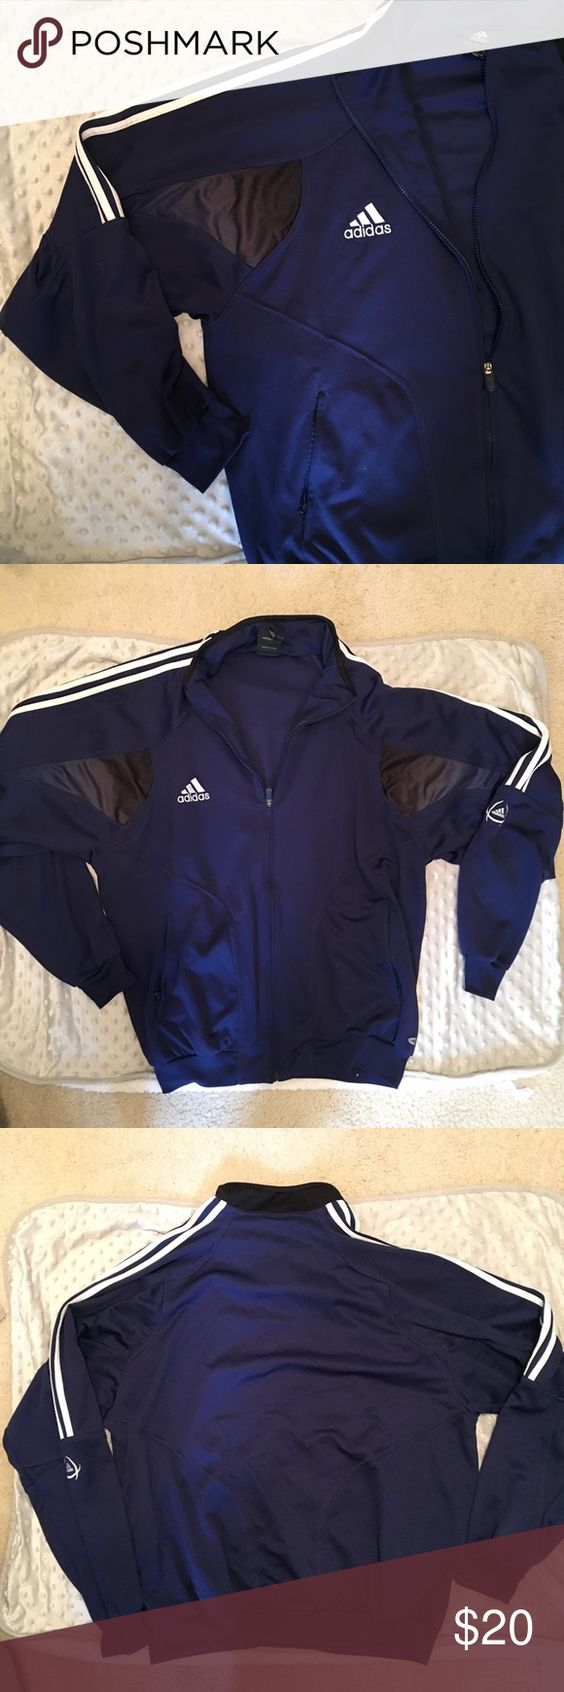 Adidas Navy Jacket Size XL navy blue with 3 white stripes. In GREAT condition. Features zipper closure and two side pockets wothbzipper closure. Small mesh panels on upper arm. 100% Polyester. Selling for $20 or best offer! Adidas Jackets & Coats Performance Jackets